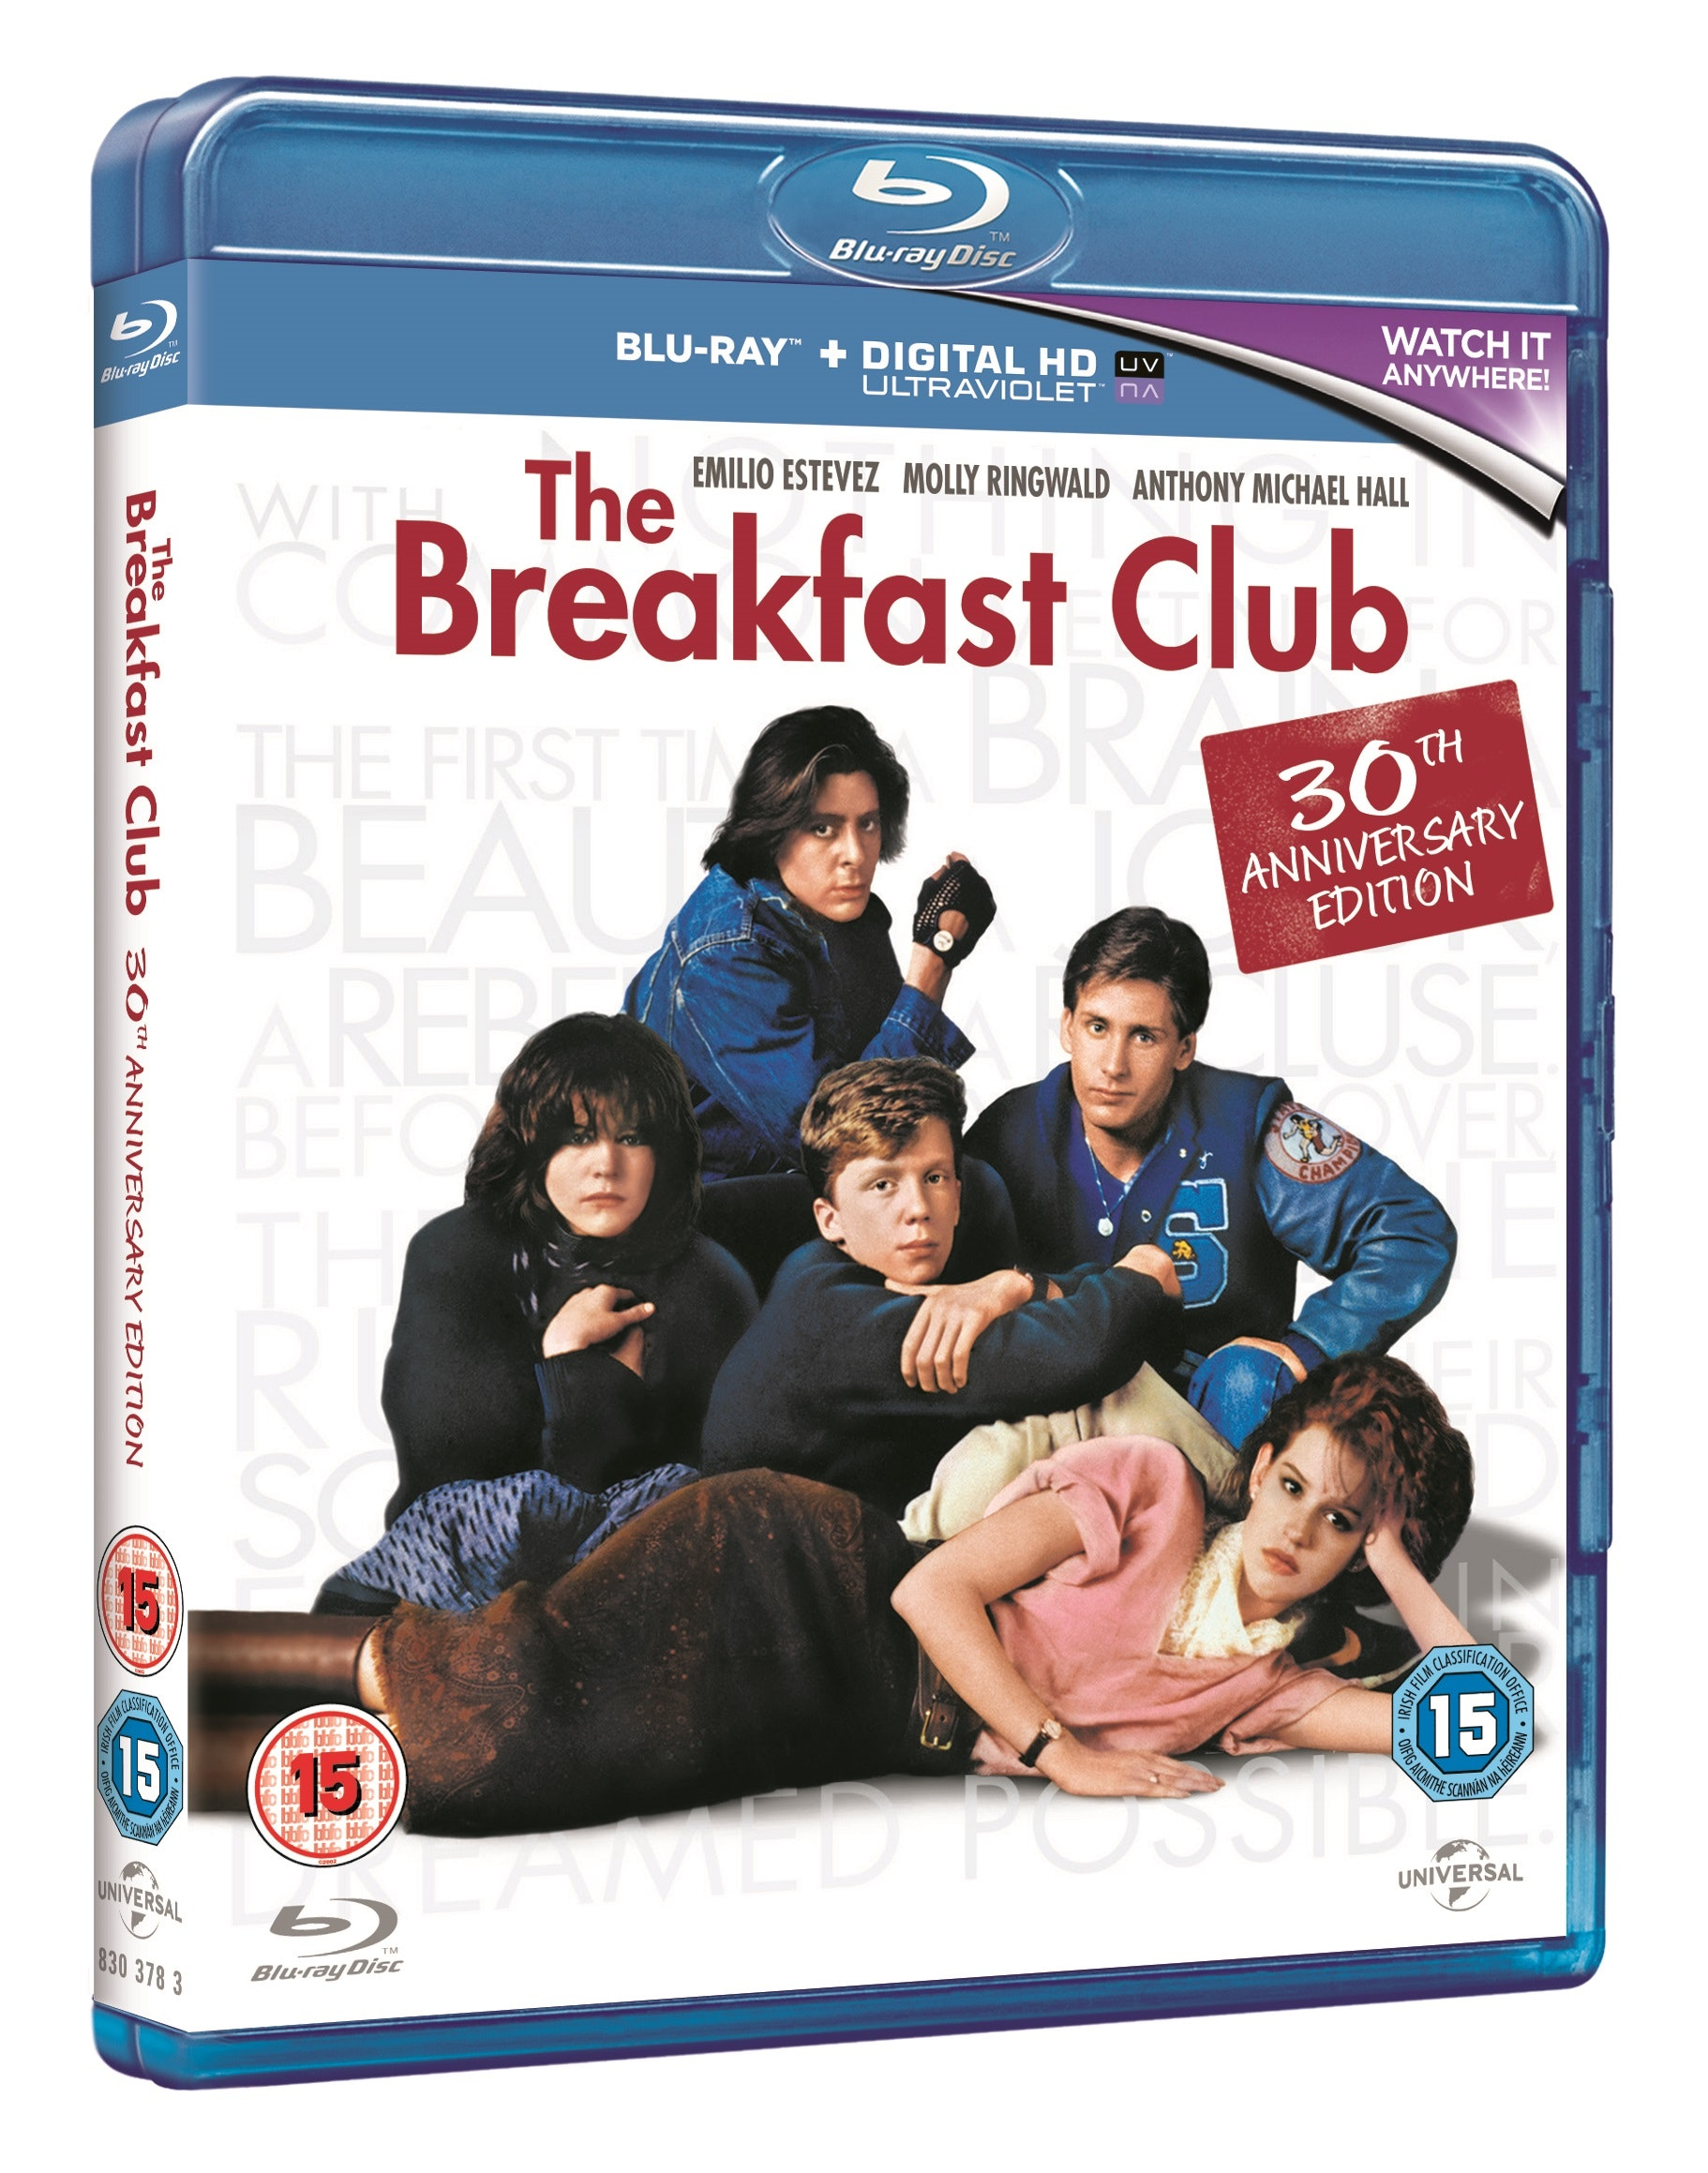 The Breakfast Club Blu-ray sweepstakes